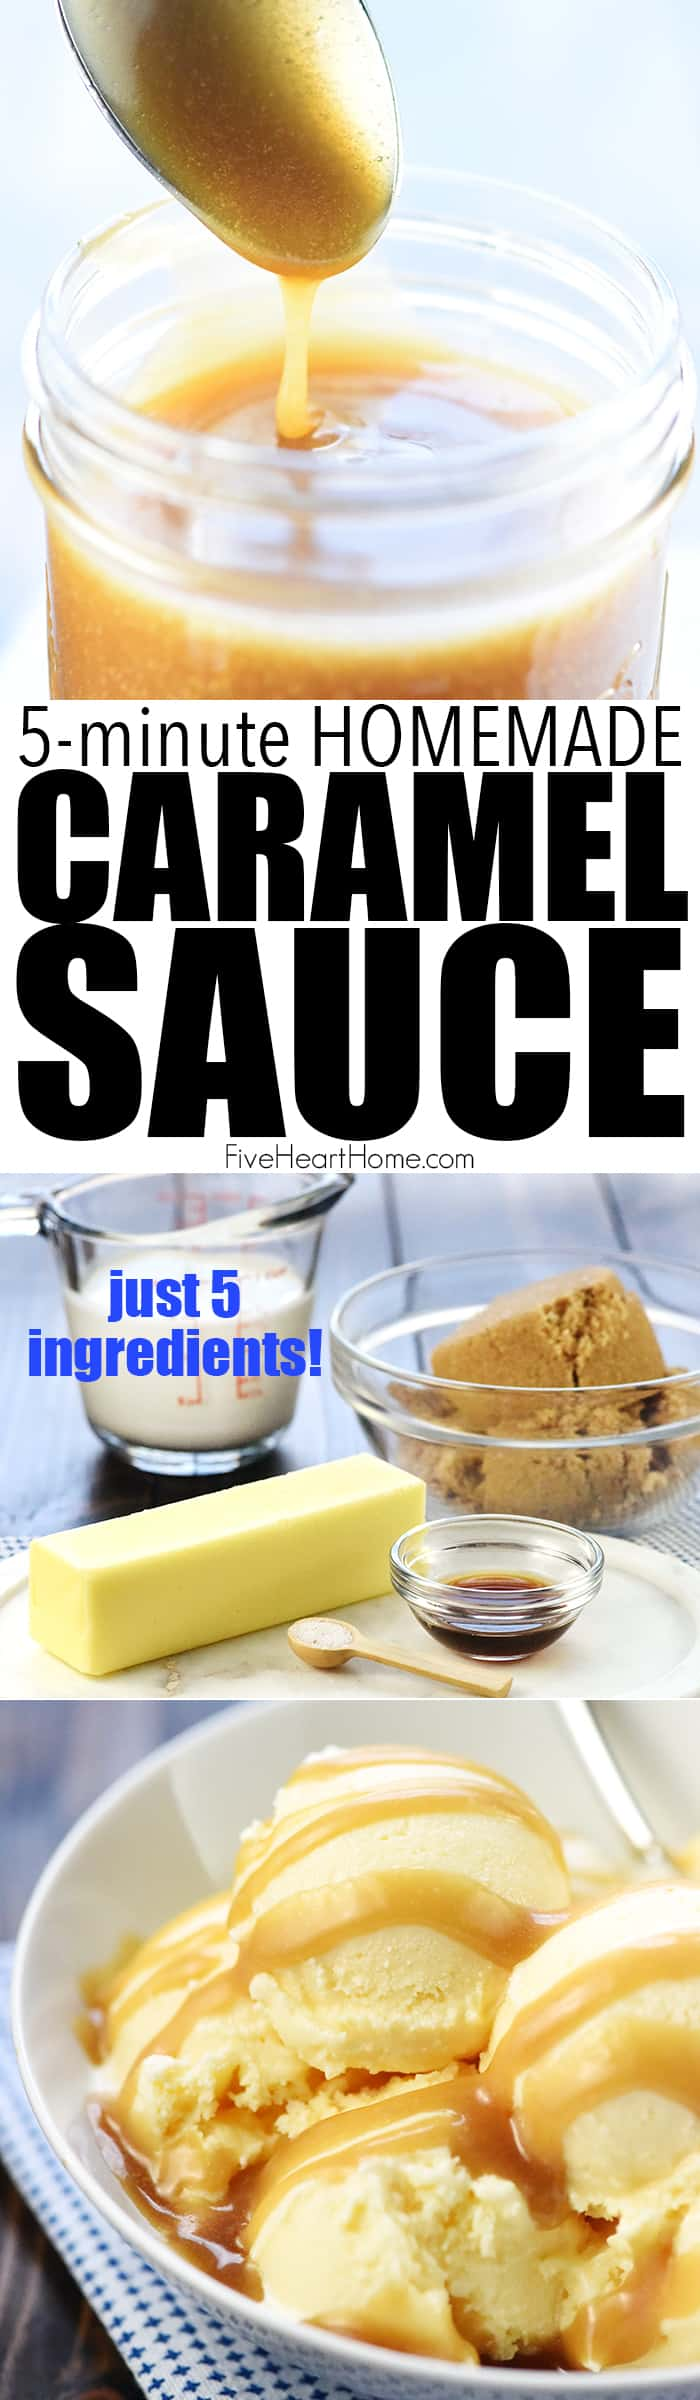 Quick & Easy Homemade Caramel Sauce Collage with Text Overlay